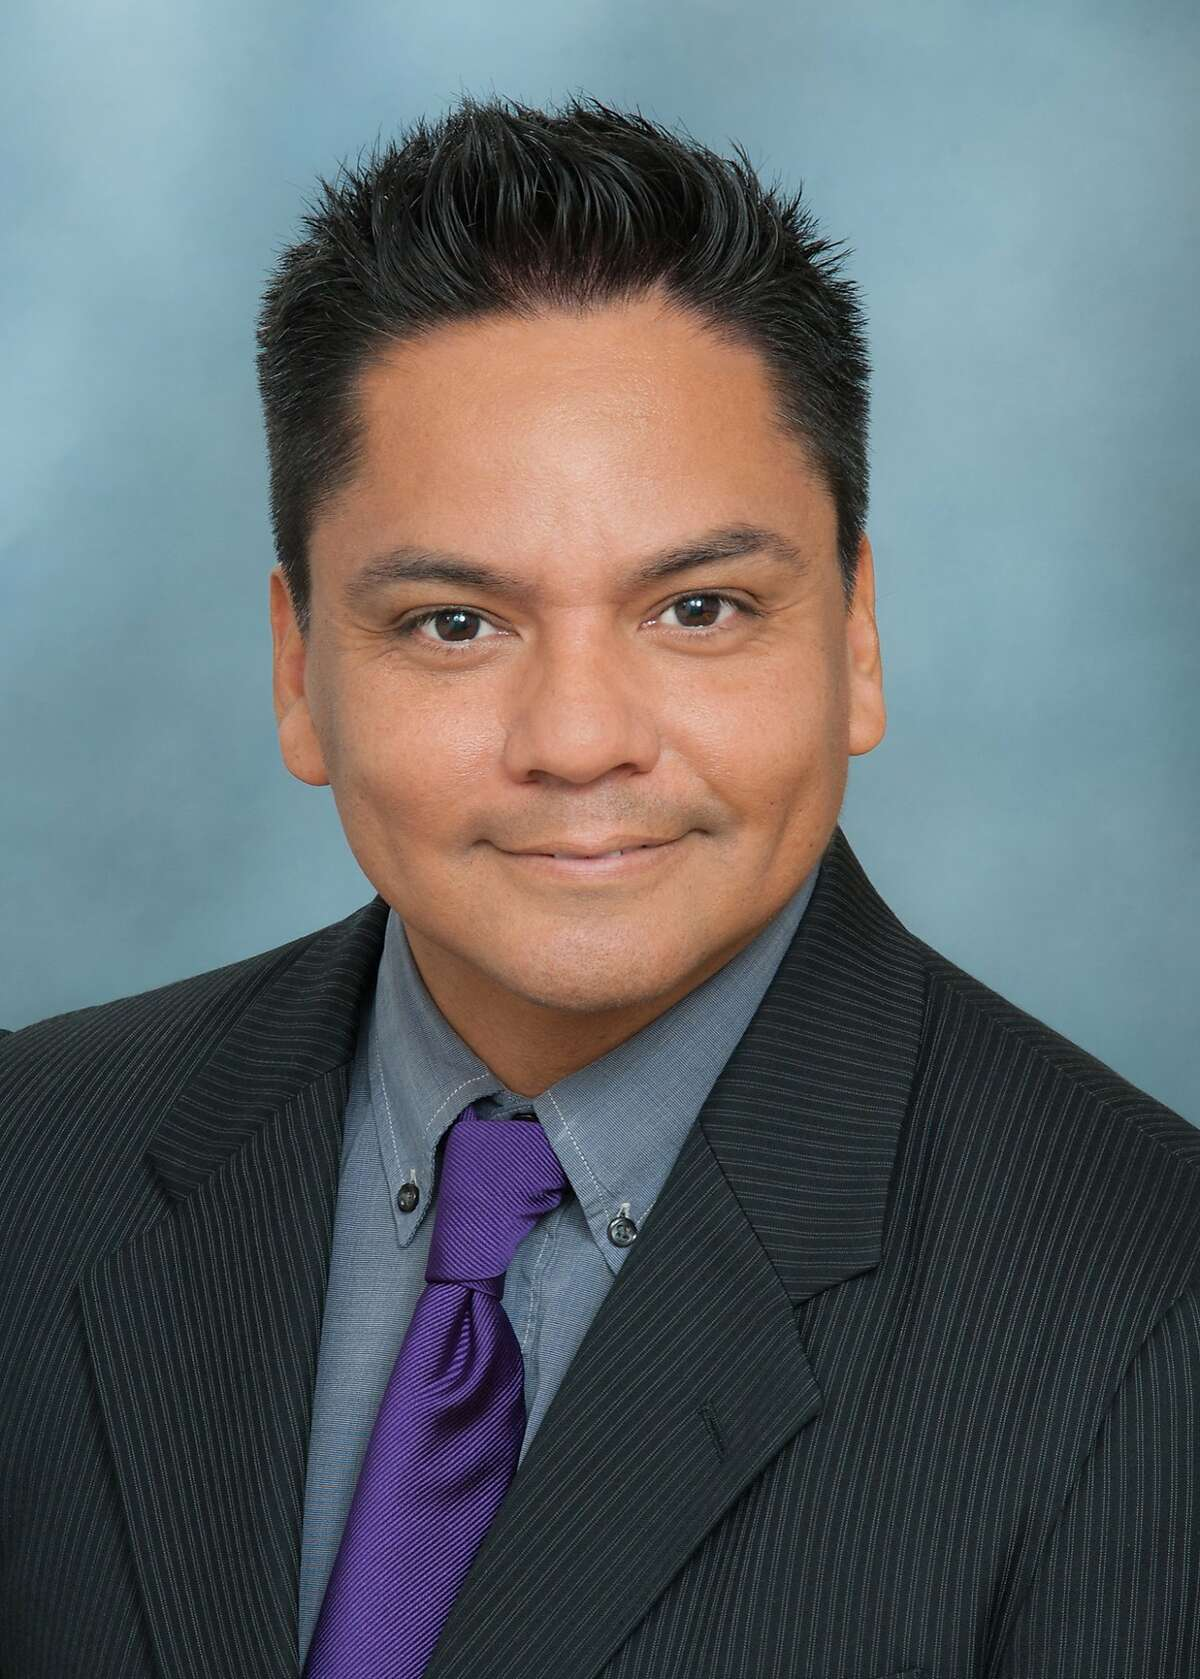 Union Bank added John Ybarra to its residential lending group as a mortgage consultant in San Francisco.